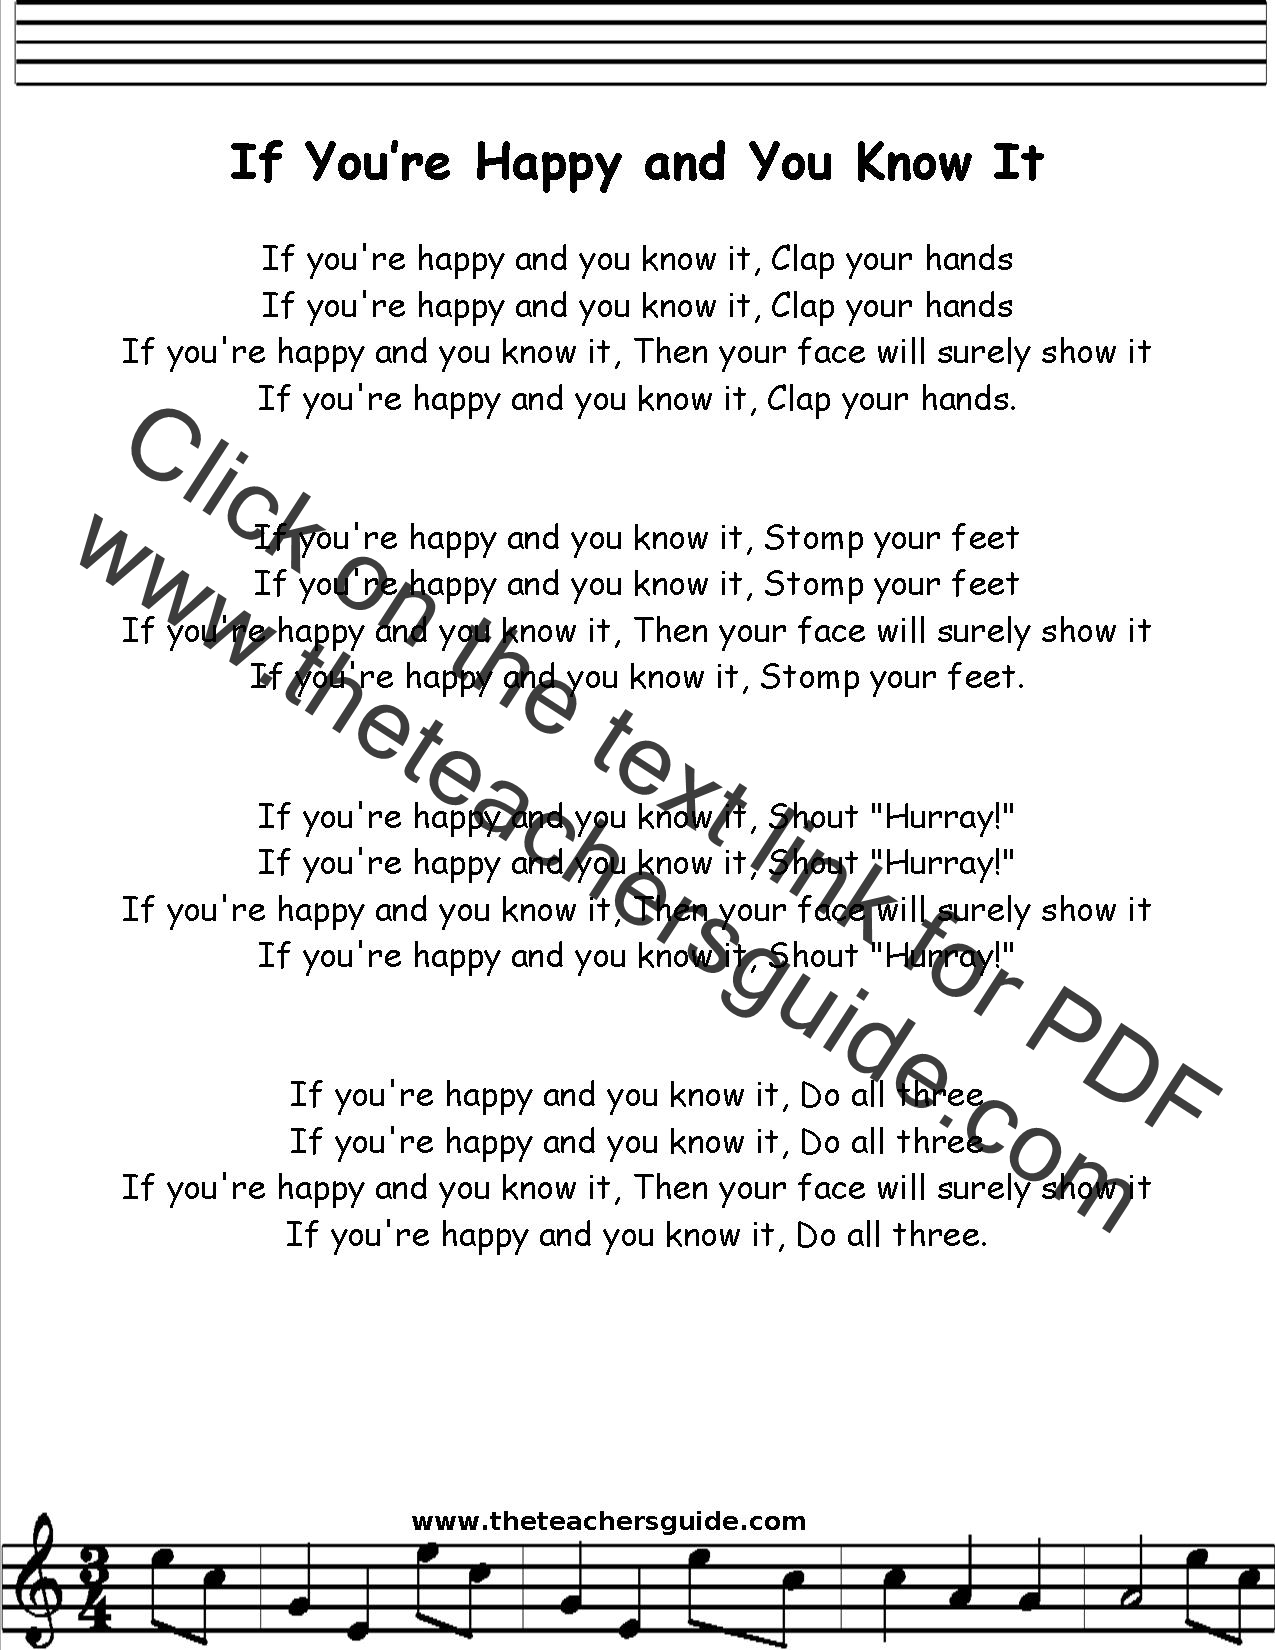 If You Re Happy And You Know It Lyrics Printout Midi